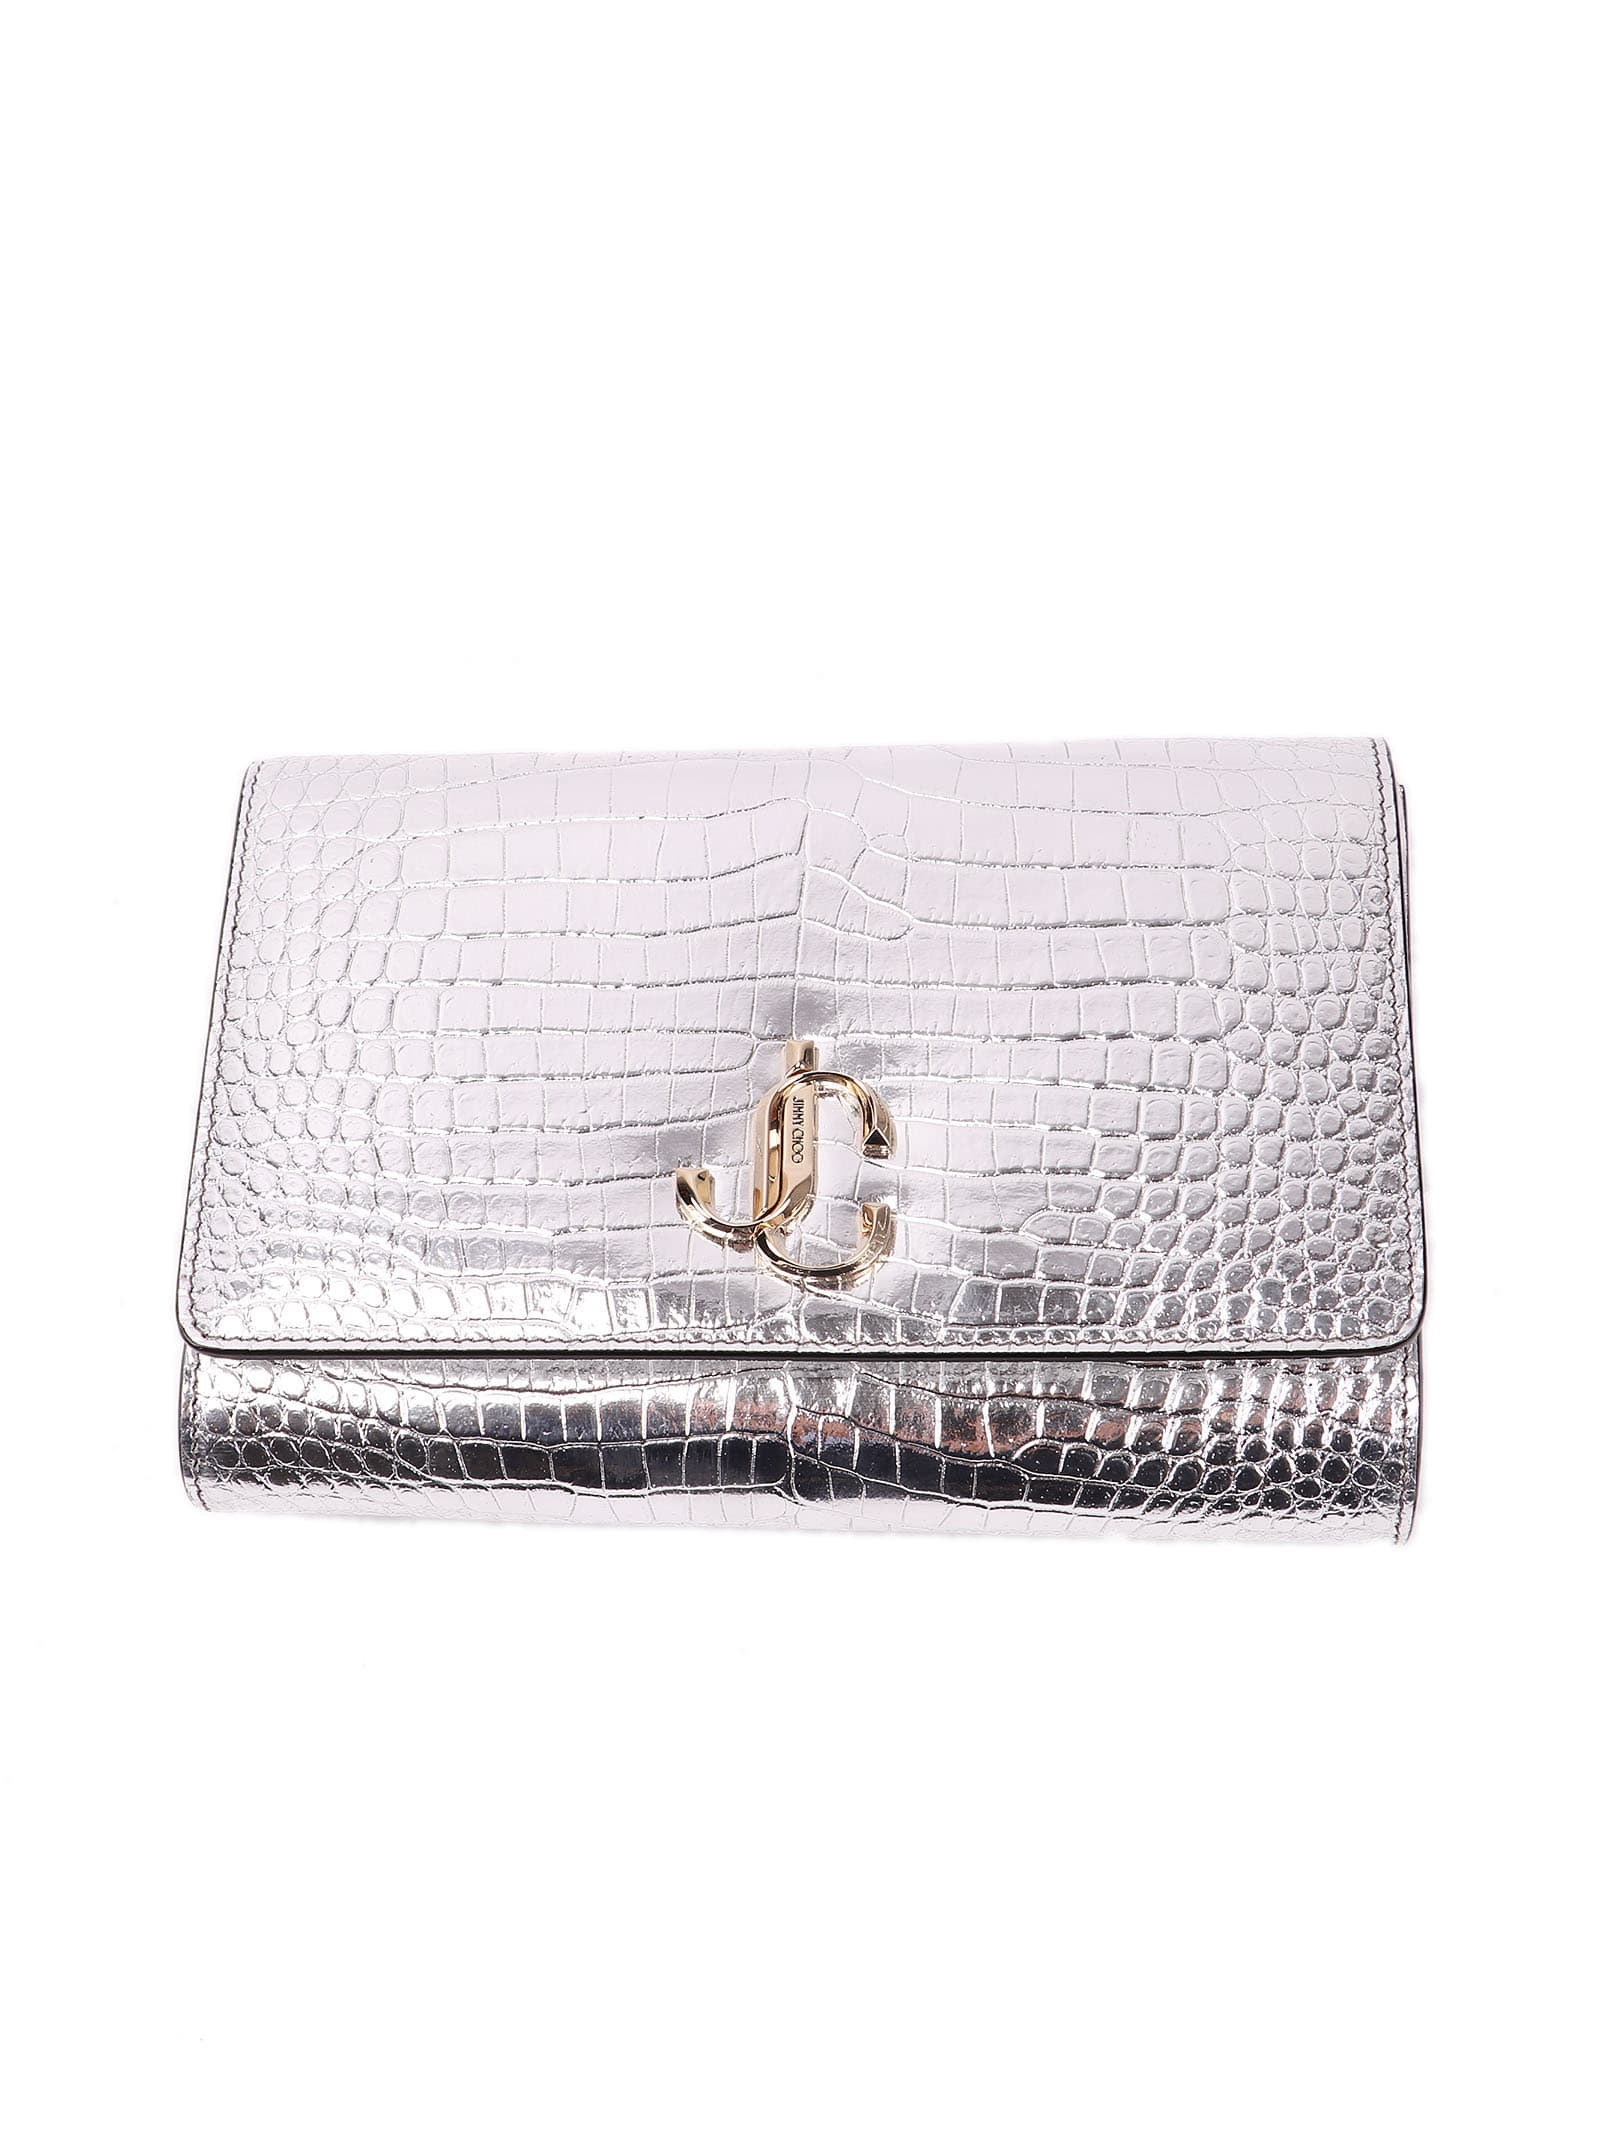 Jimmy Choo Metallic Croc Embossed